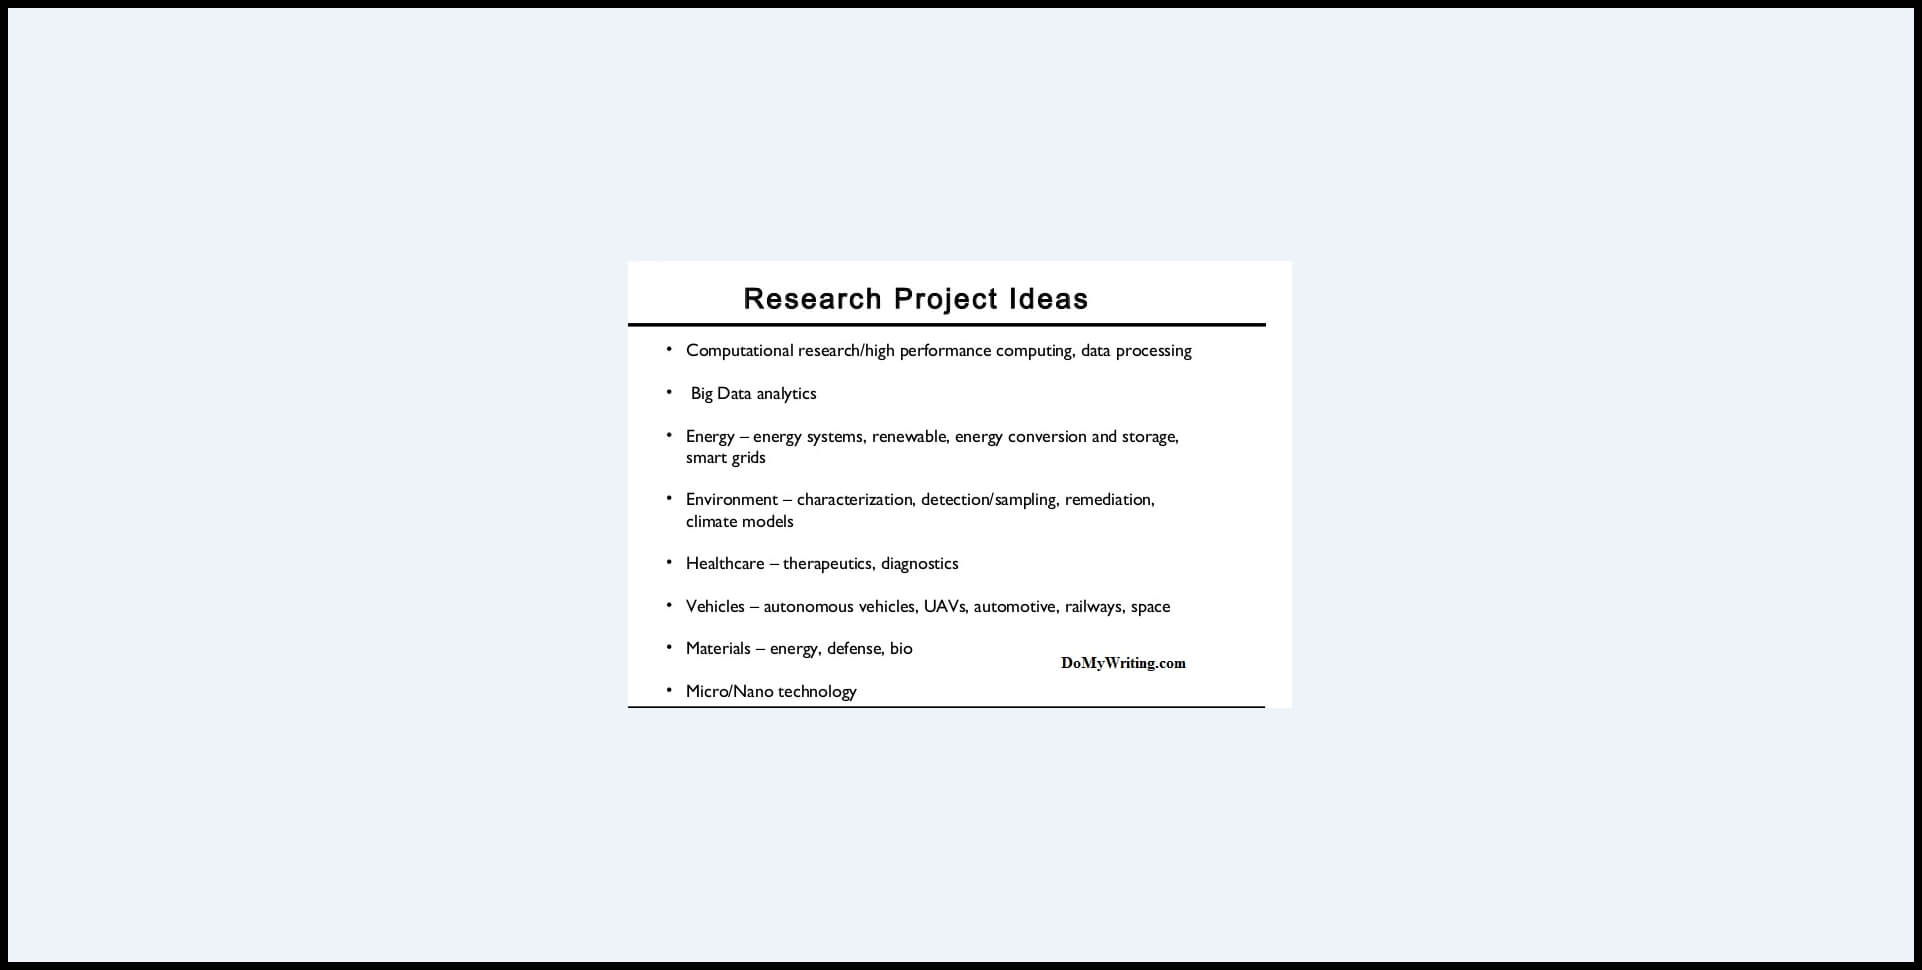 Research Project Ideas